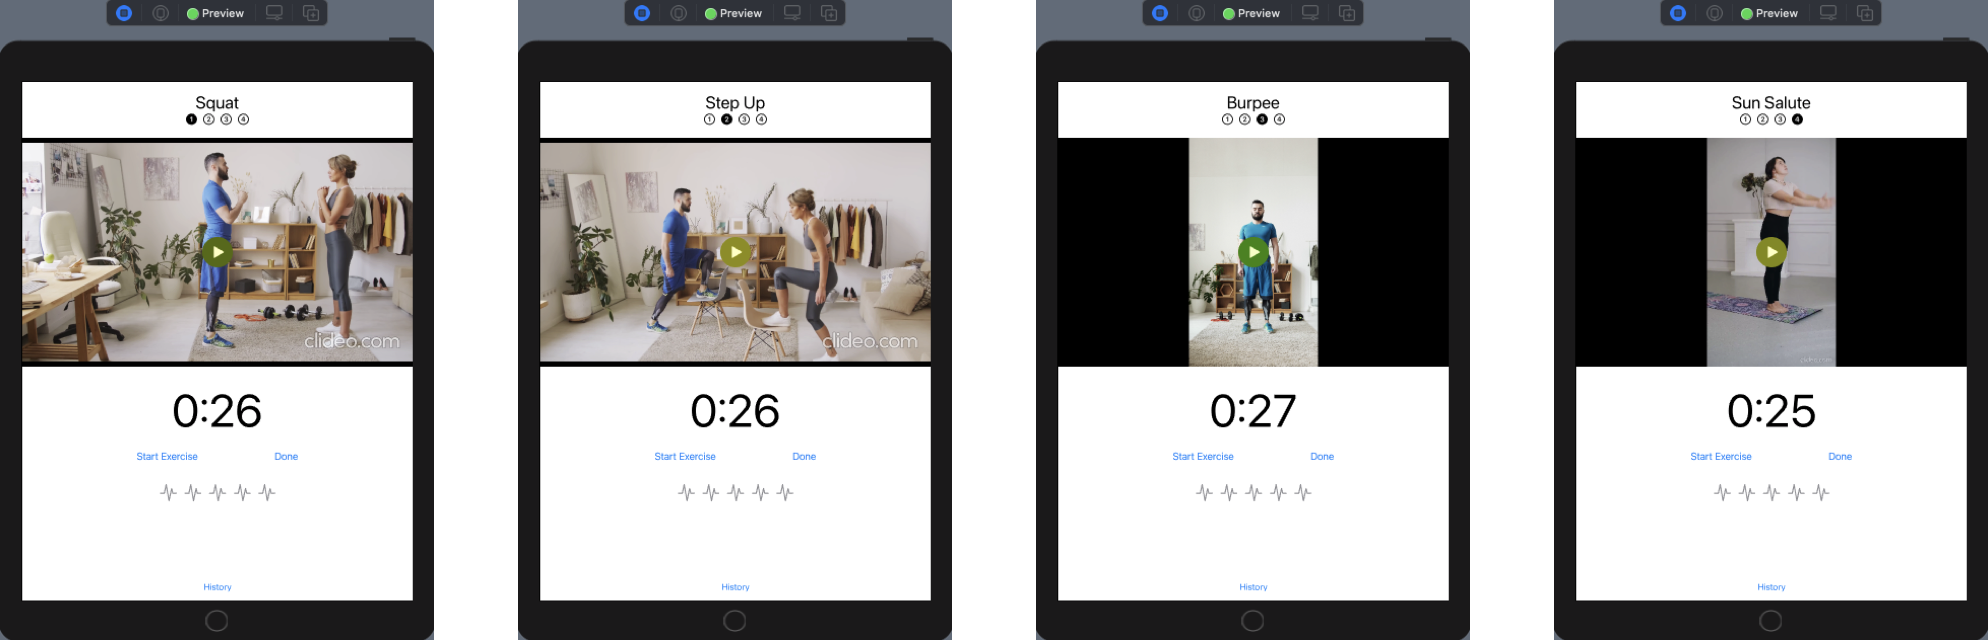 ExerciseView with page numbers